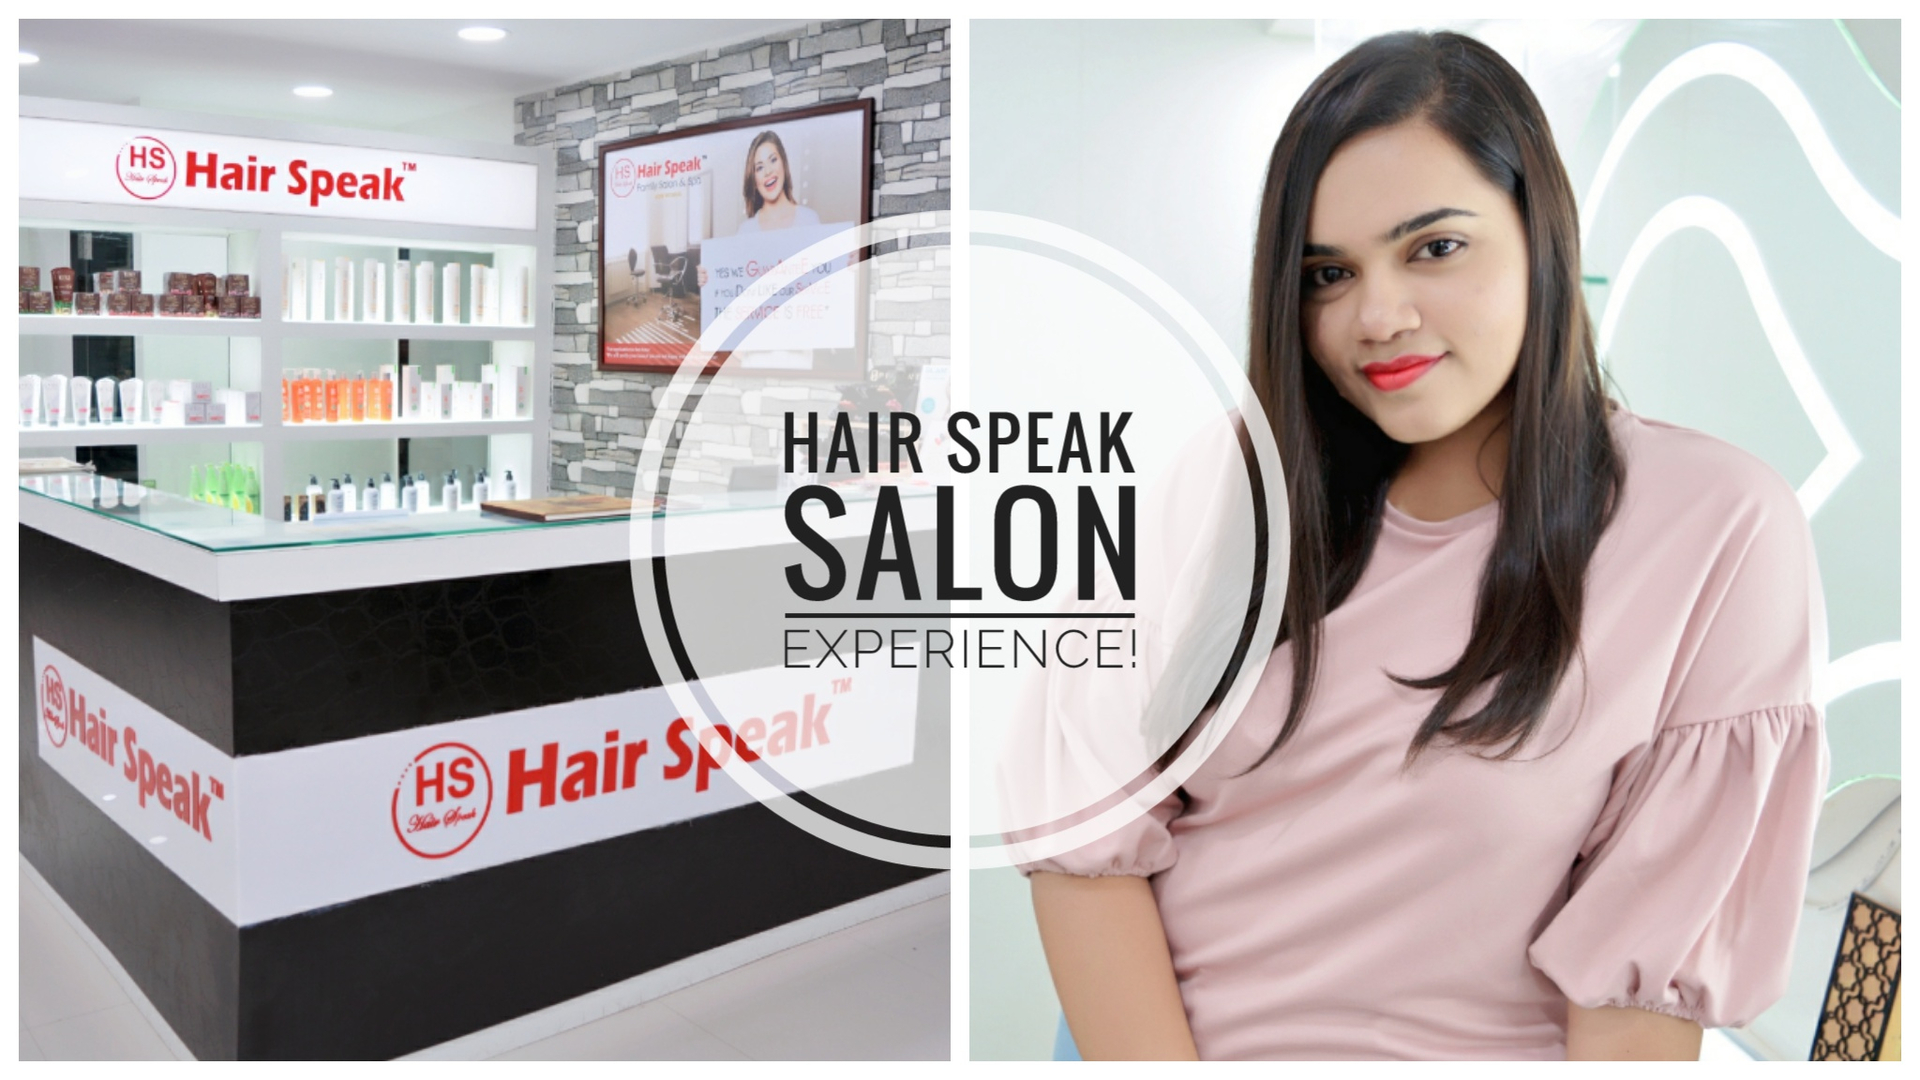 Hair Speak Salon Experience image